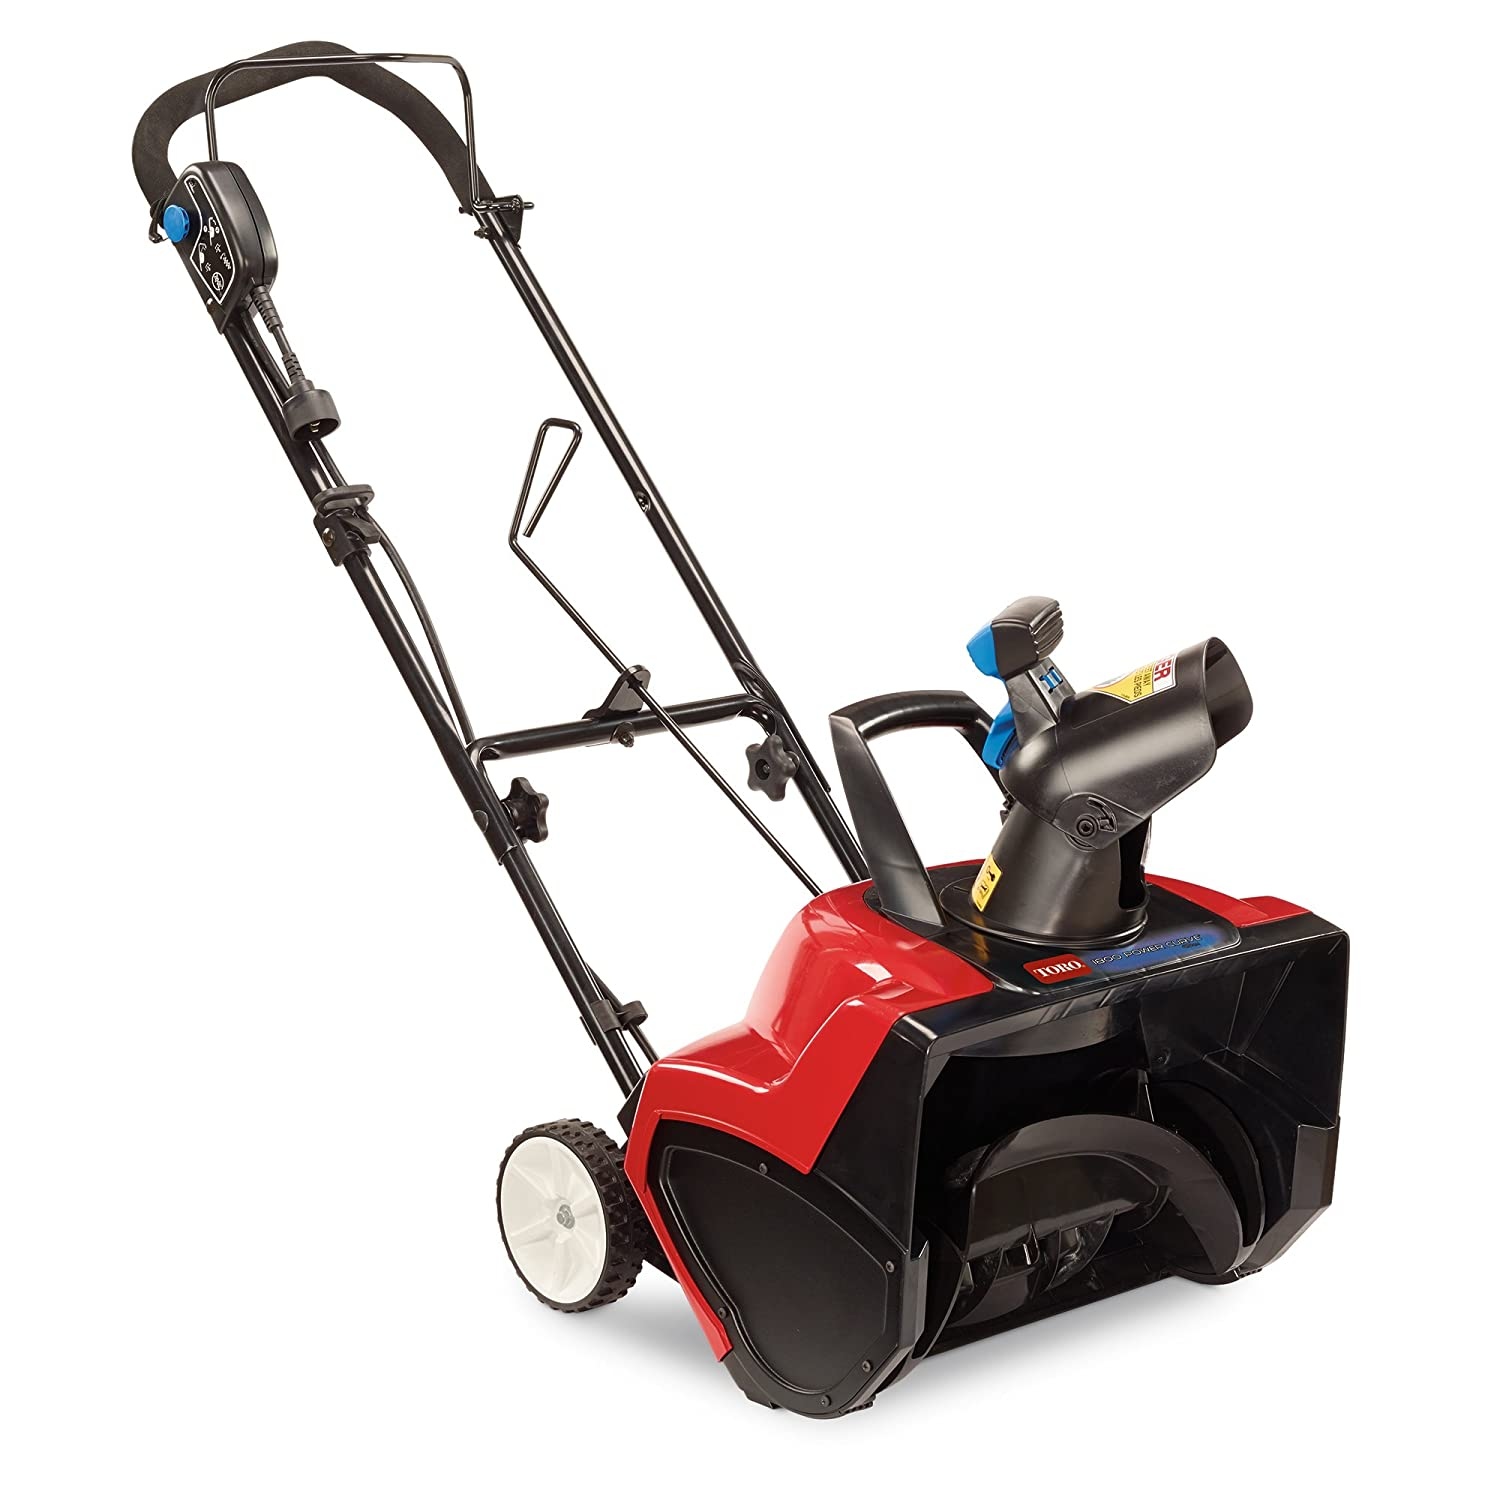 Toro 38381 Power Curve Snow Blower Black Friday Deal